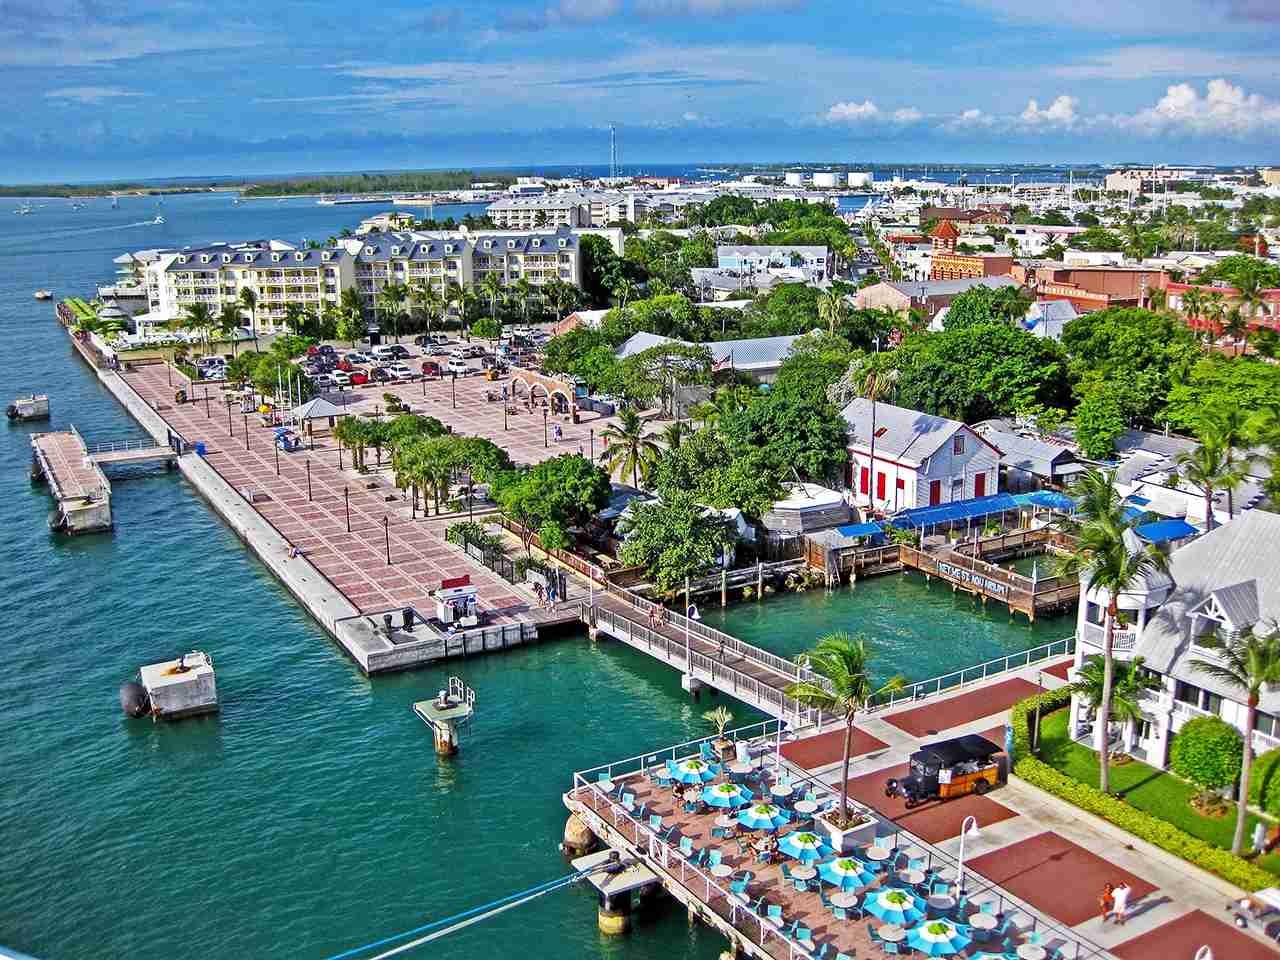 The tropical city of Key West just got a lot closer for folks in Philly and Chicago. (Photo by @galvman2 via Twenty20)